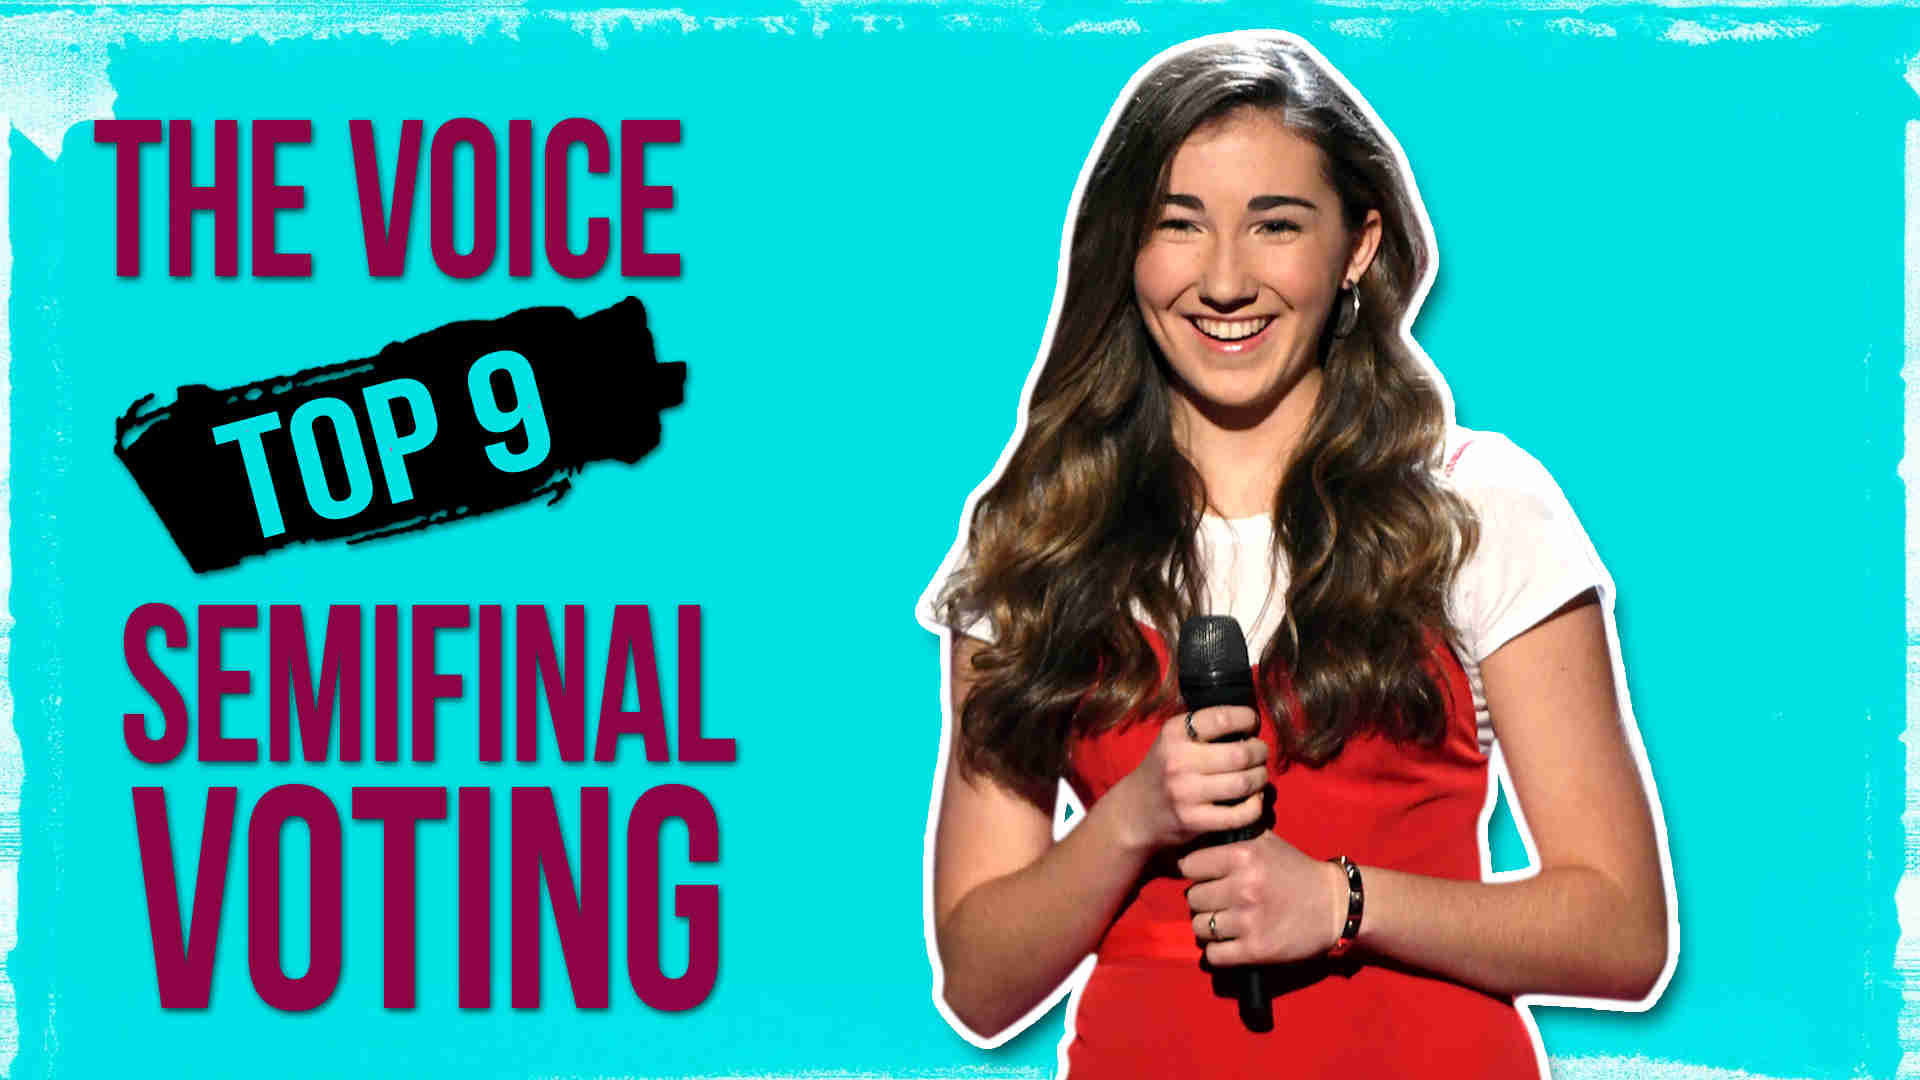 Vote Allegra Miles The Voice 2020 Semifinals Voting Tonight on 11 May 2020